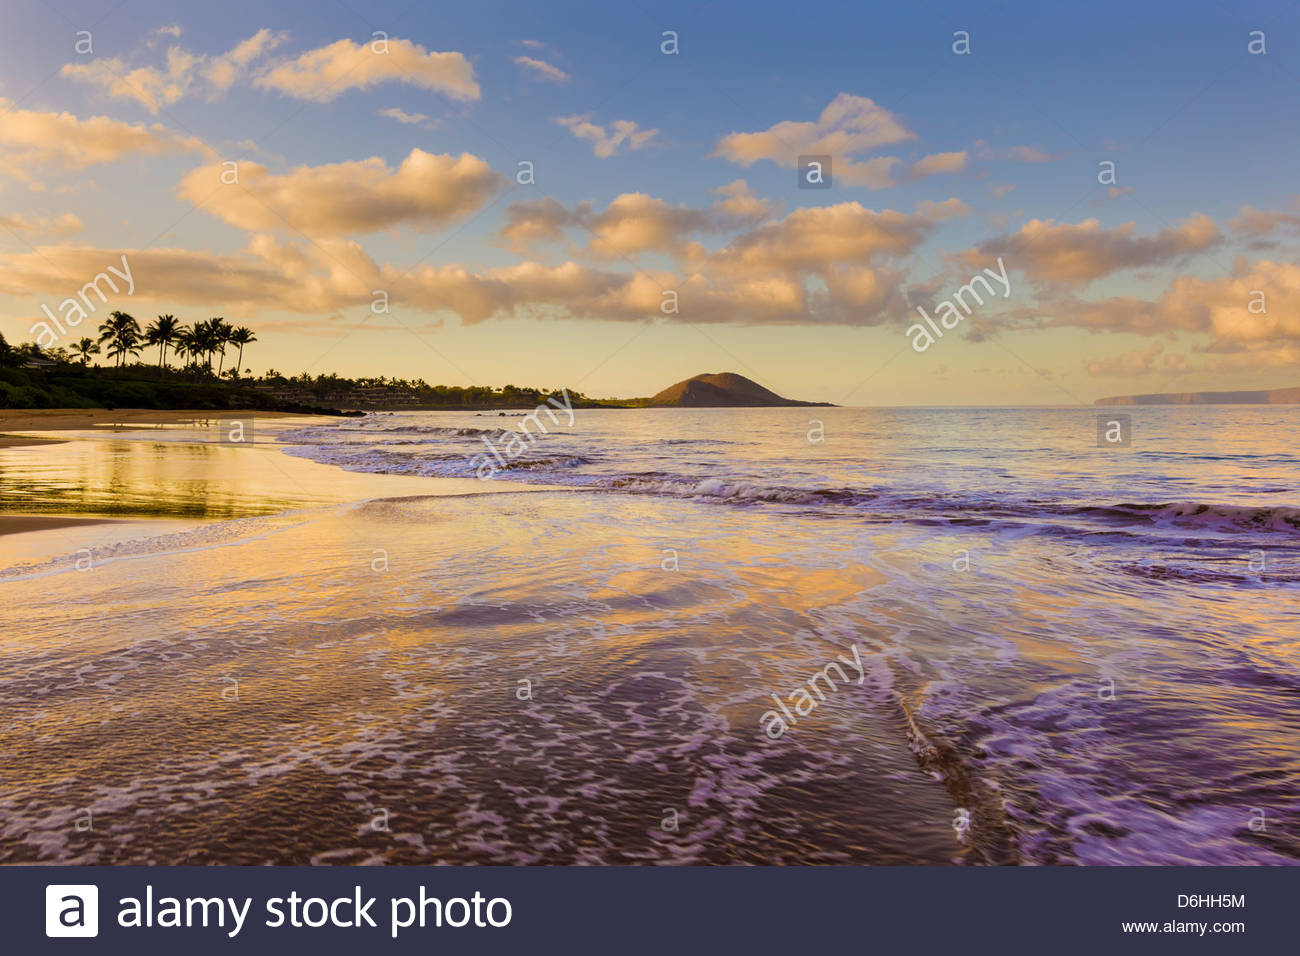 Sunrise and incoming gentle waves on Po'olenalena Beach in Makena on the island of Maui in the State of Hawaii - Stock Image